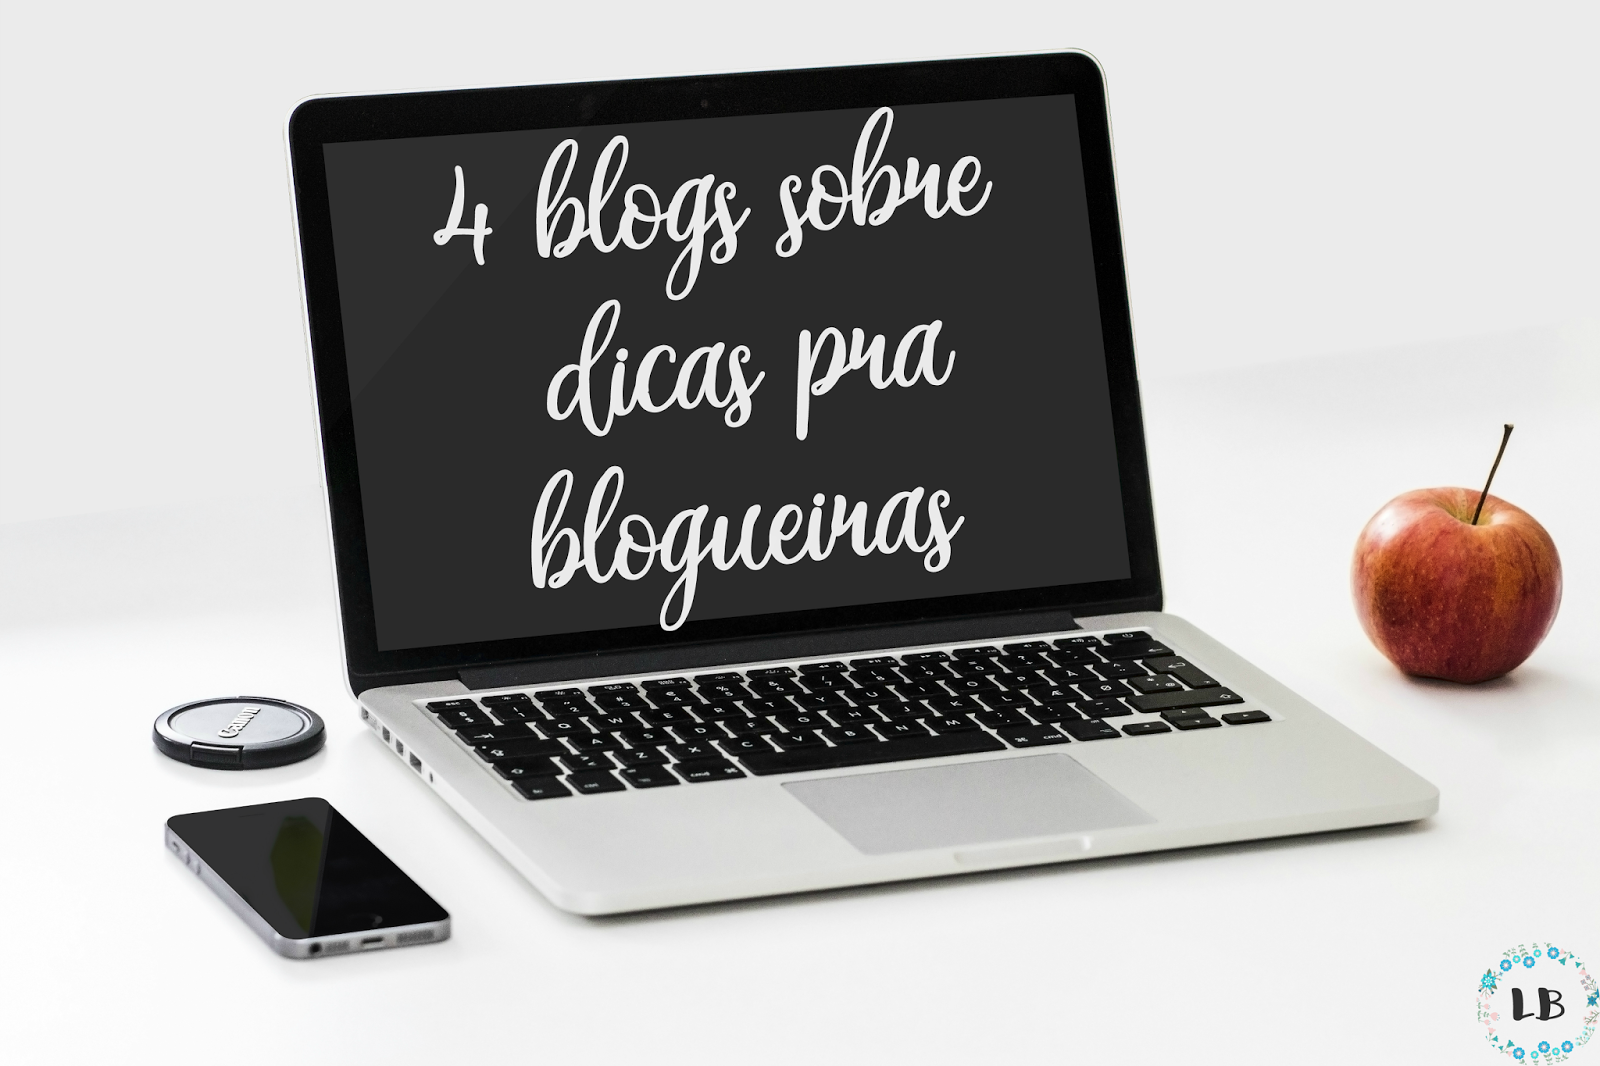 quatro-blogs-sobre-blogs